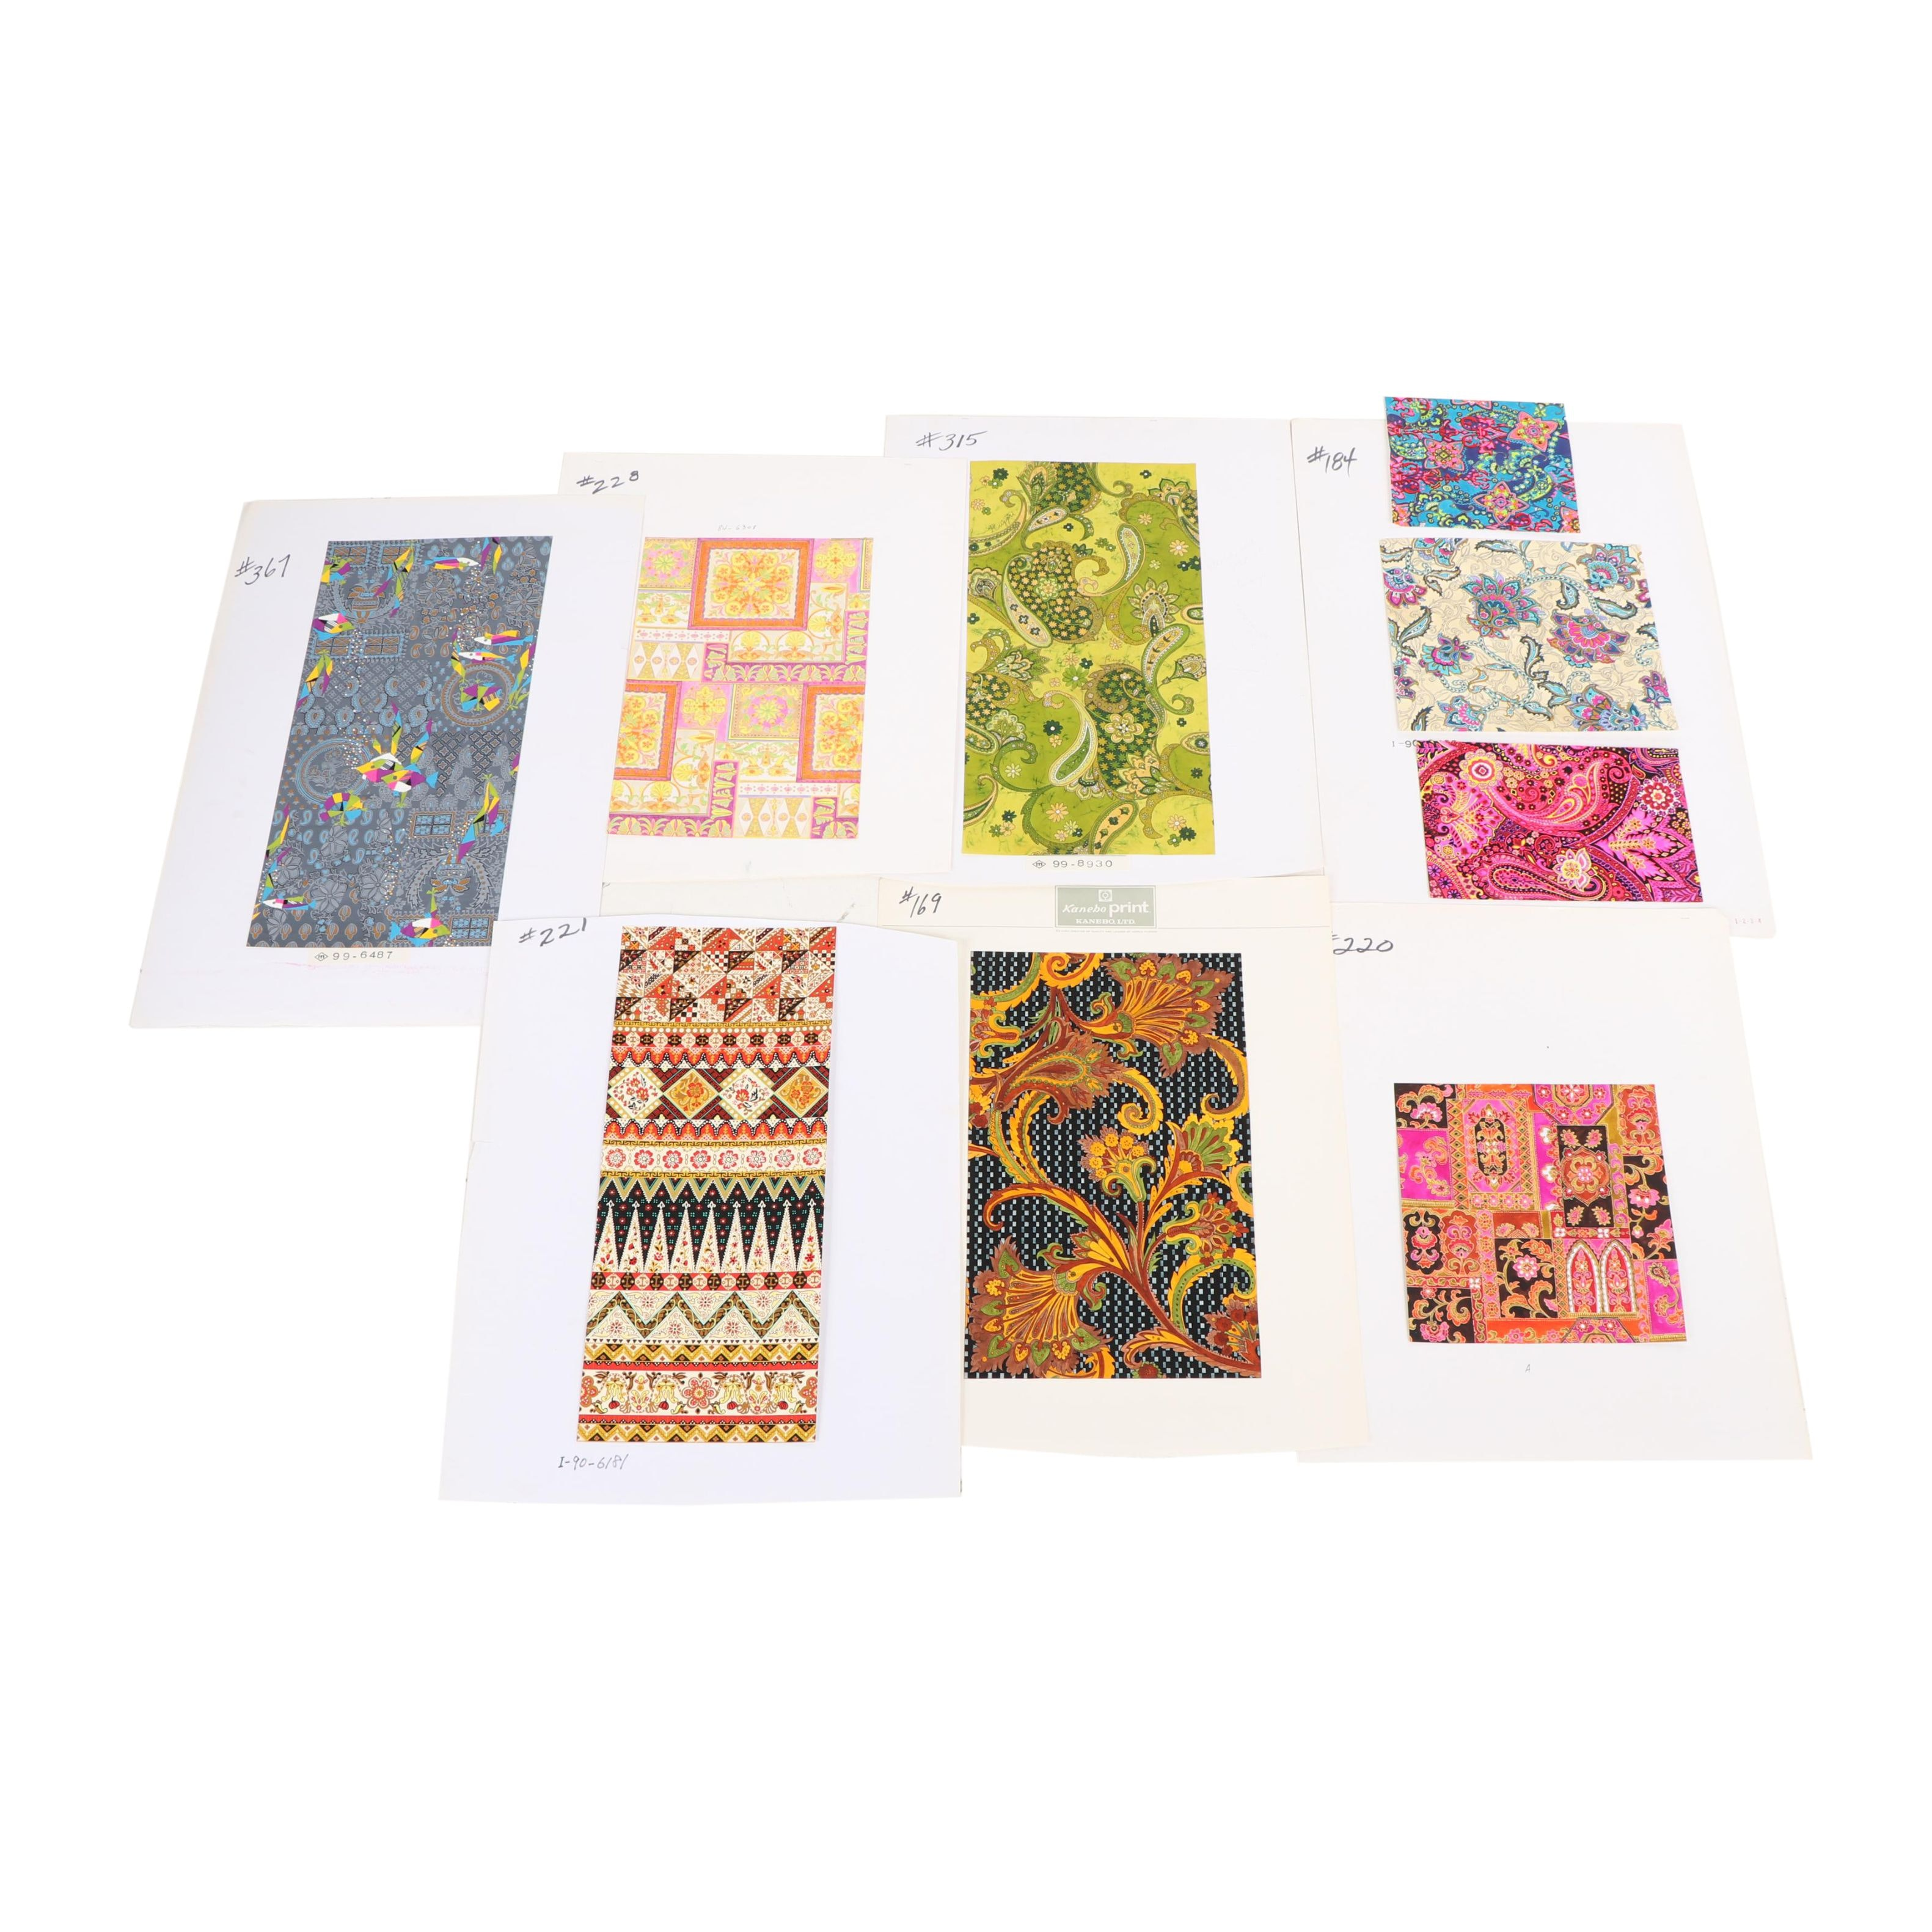 Kanebo and Other Japanese Acrylic and Gouache Painted Textile Pattern Designs